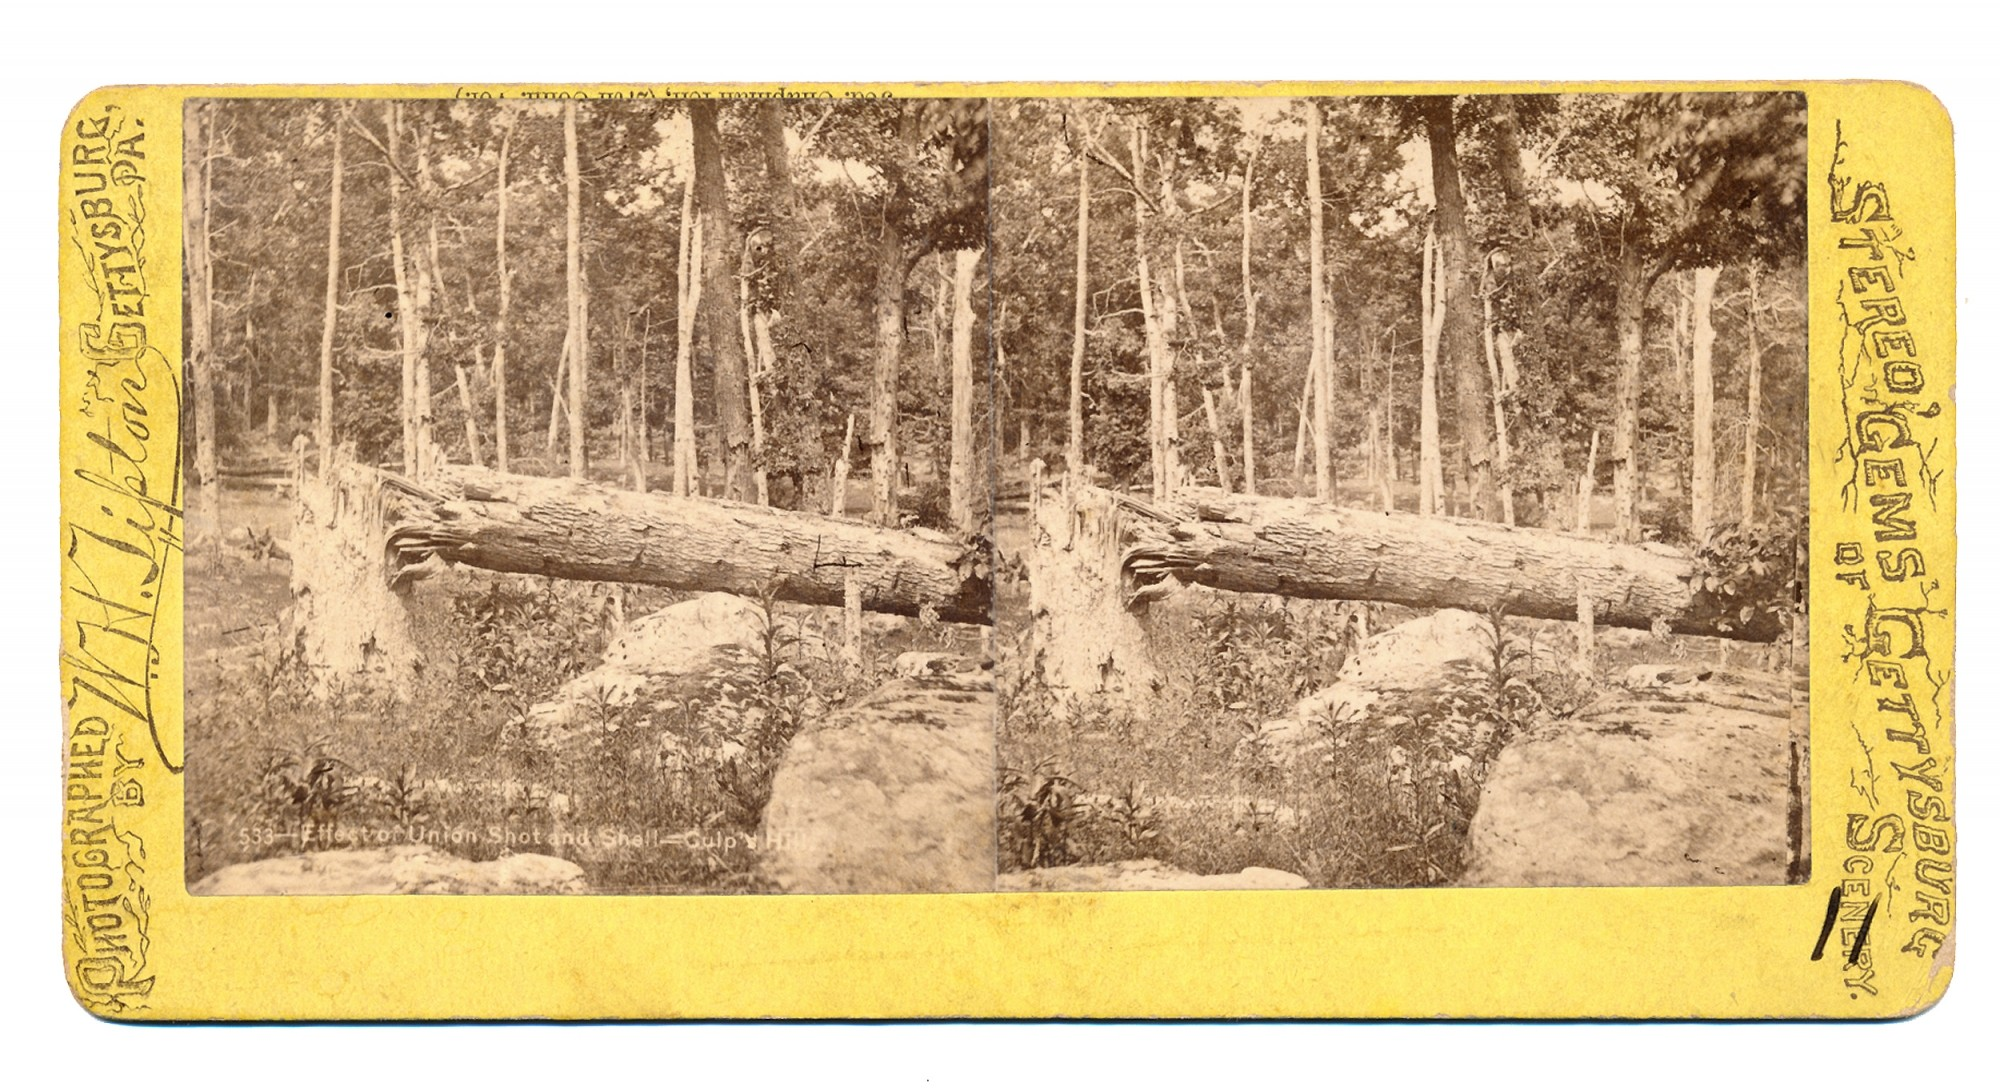 TIPTON STEREO VIEW OF BATTLE SCARRED TREES ON CULP'S HILL, GETTYSBURG